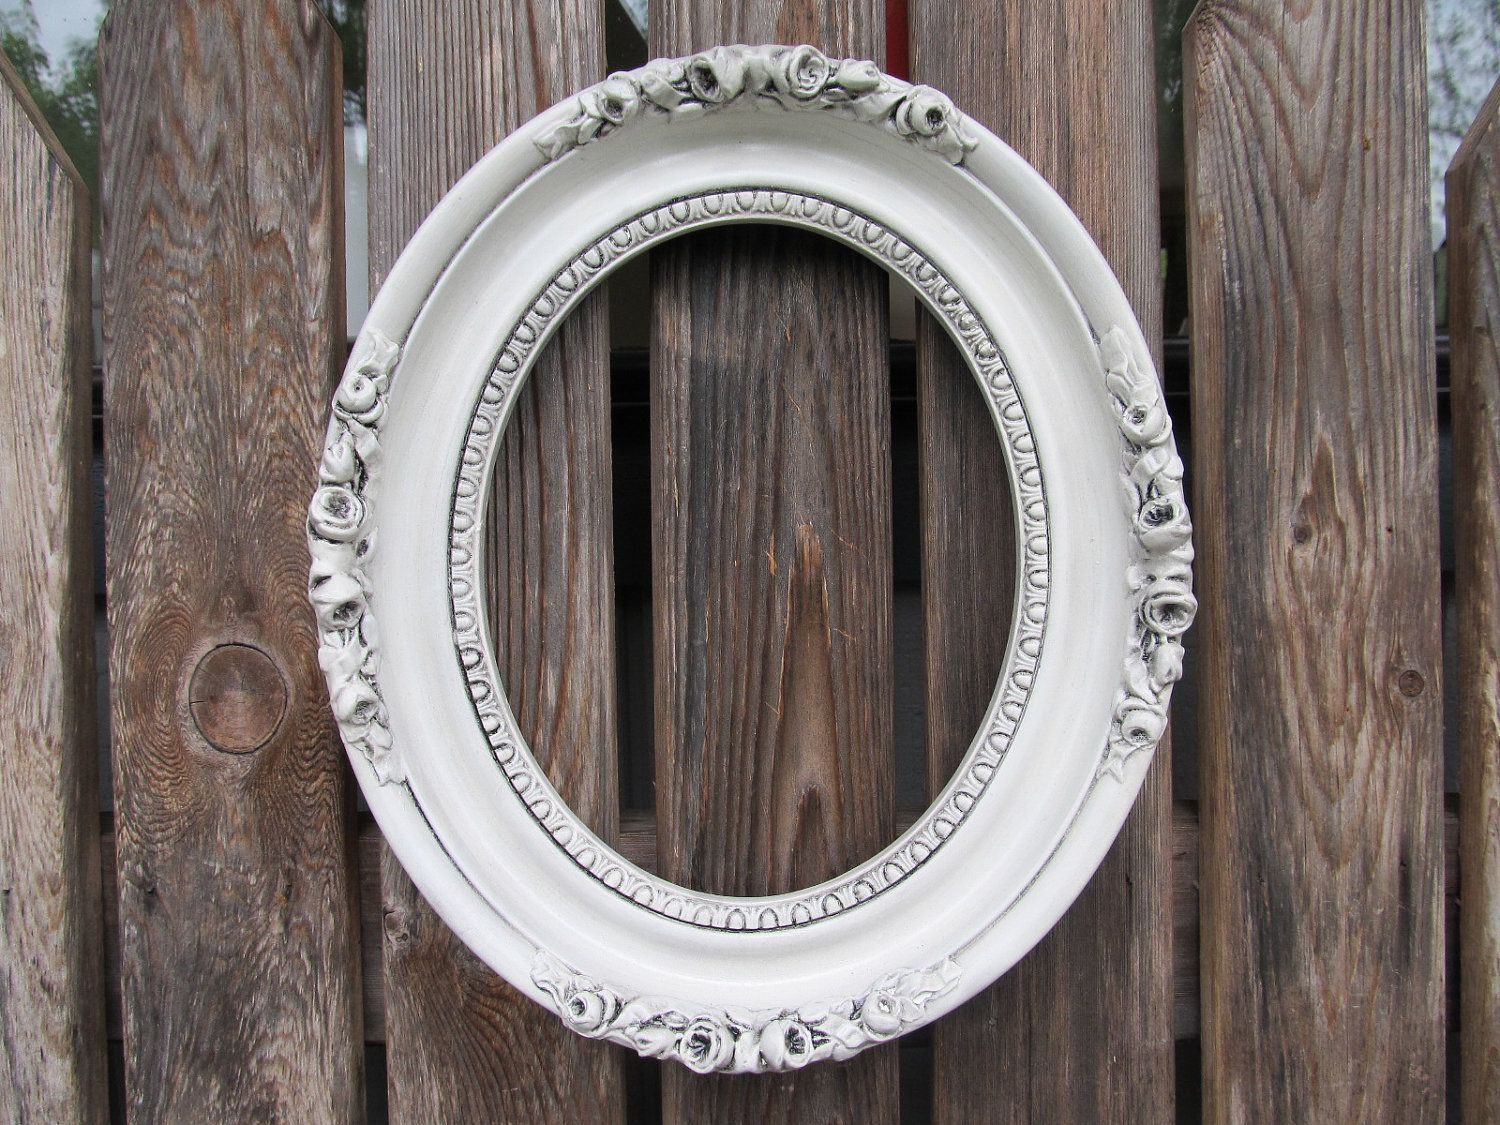 Antique oval picture frame vintage antiqued white oval ornate antique oval picture frame vintage antiqued white oval ornate frame by deboshomedecor on etsy jeuxipadfo Image collections